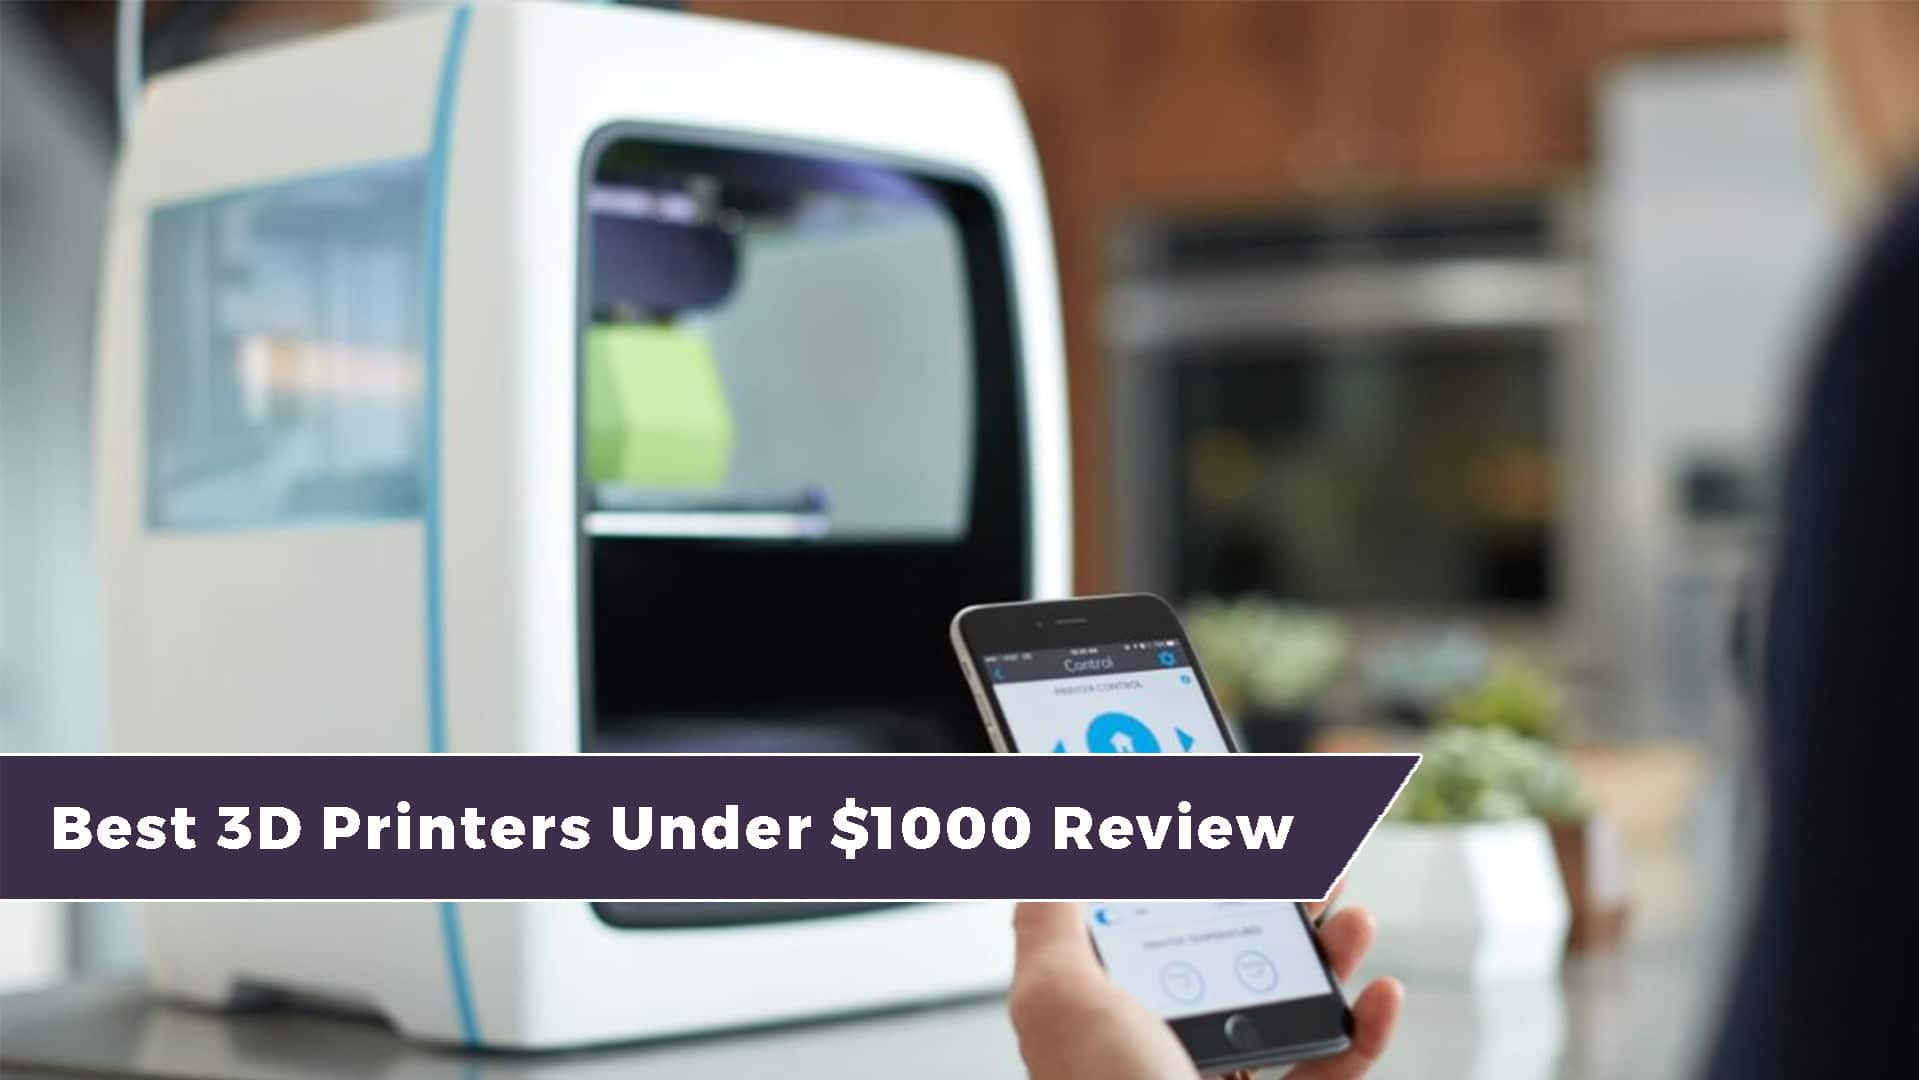 The Best 3D printers Under $1000 (Including DIY Kits) 1